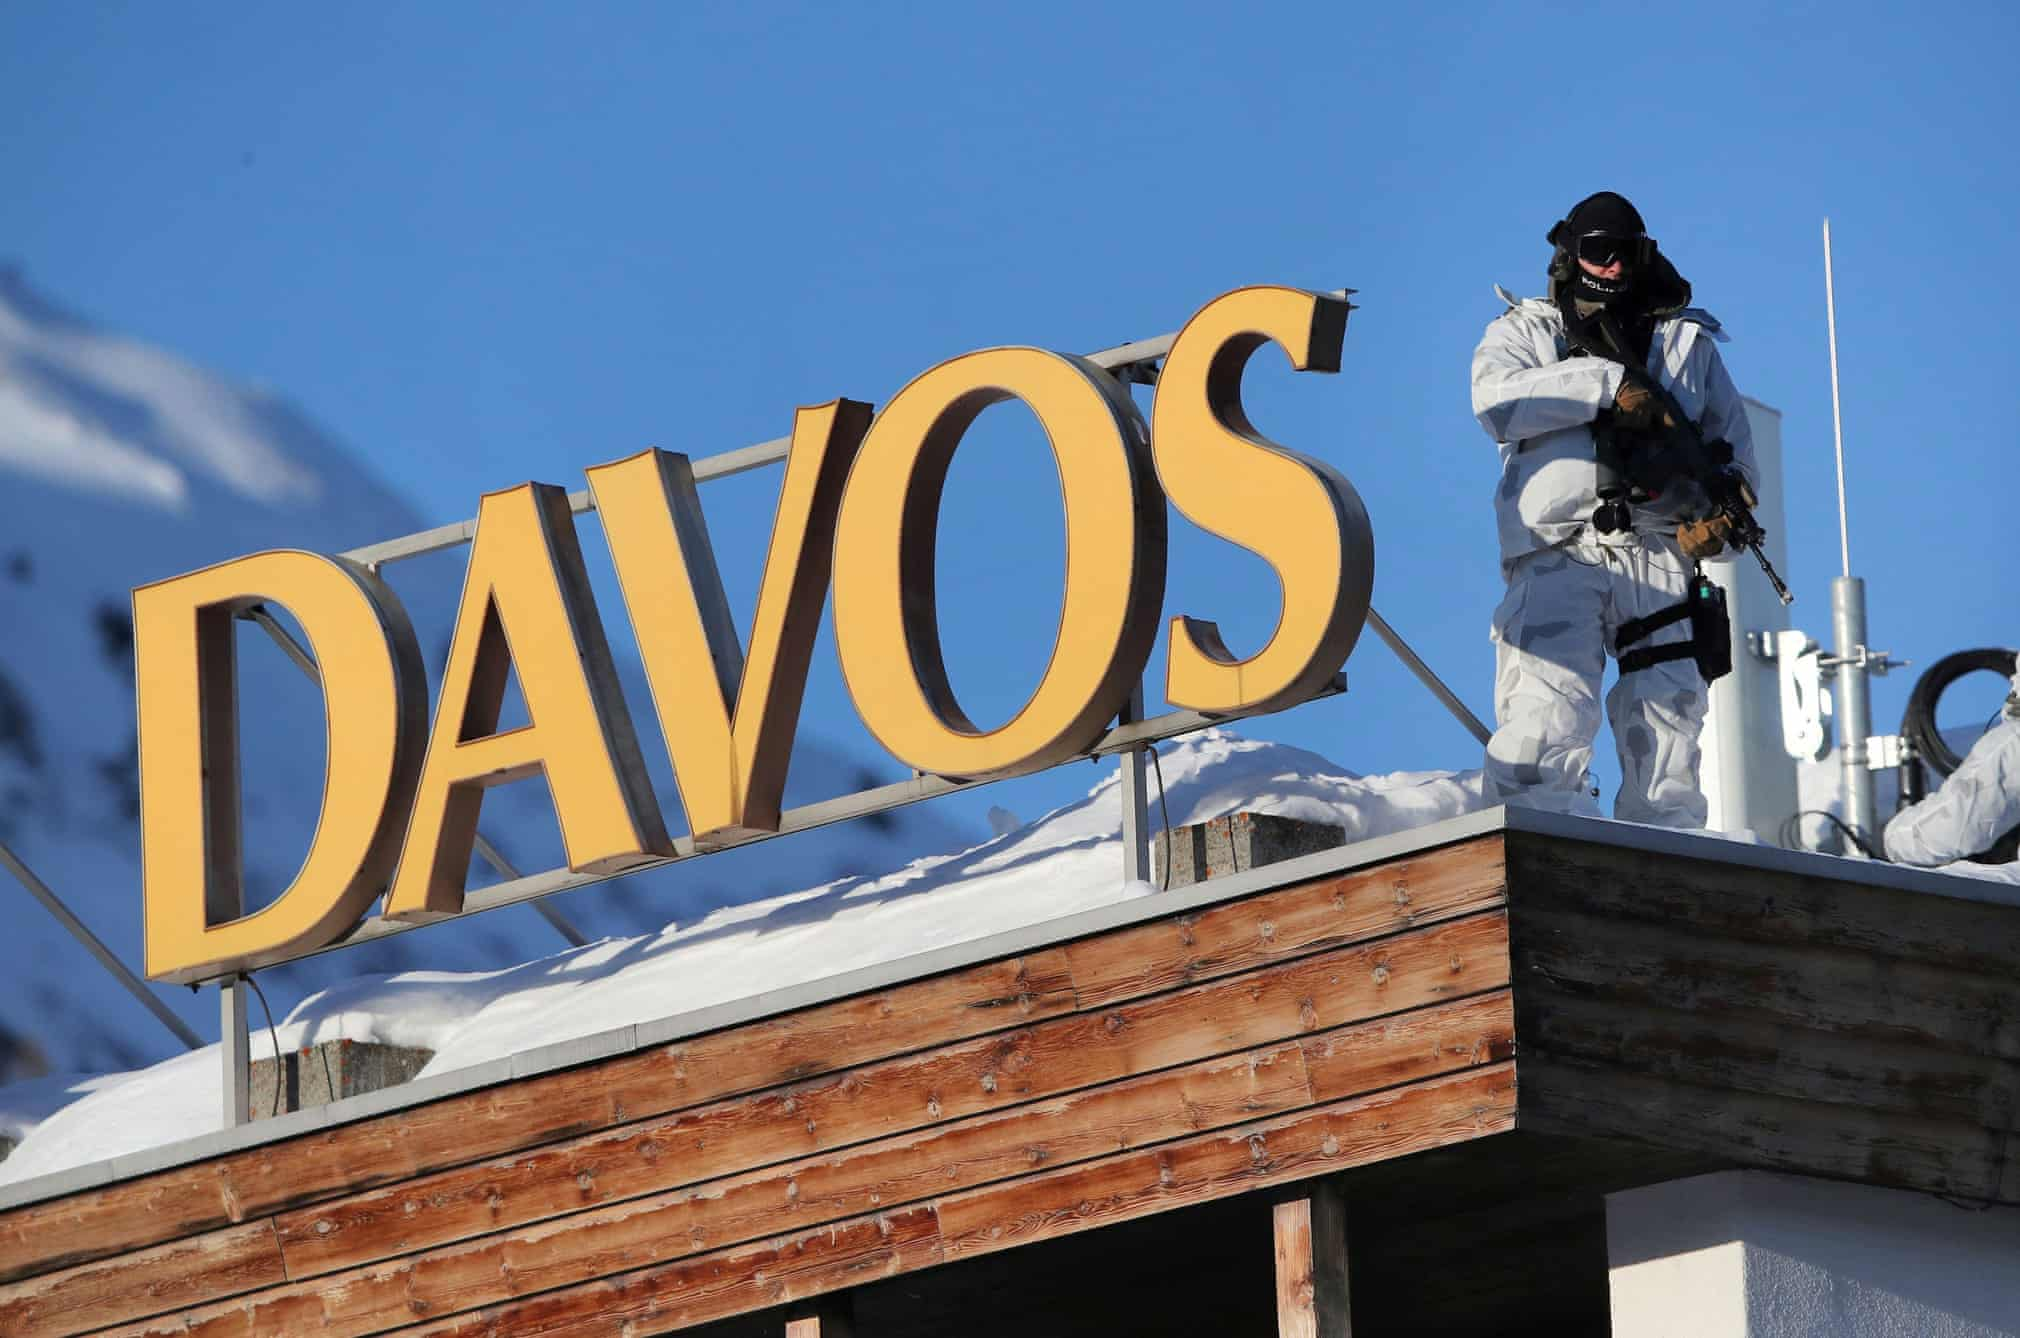 A police officer stands guard ahead of the annual event in Davos